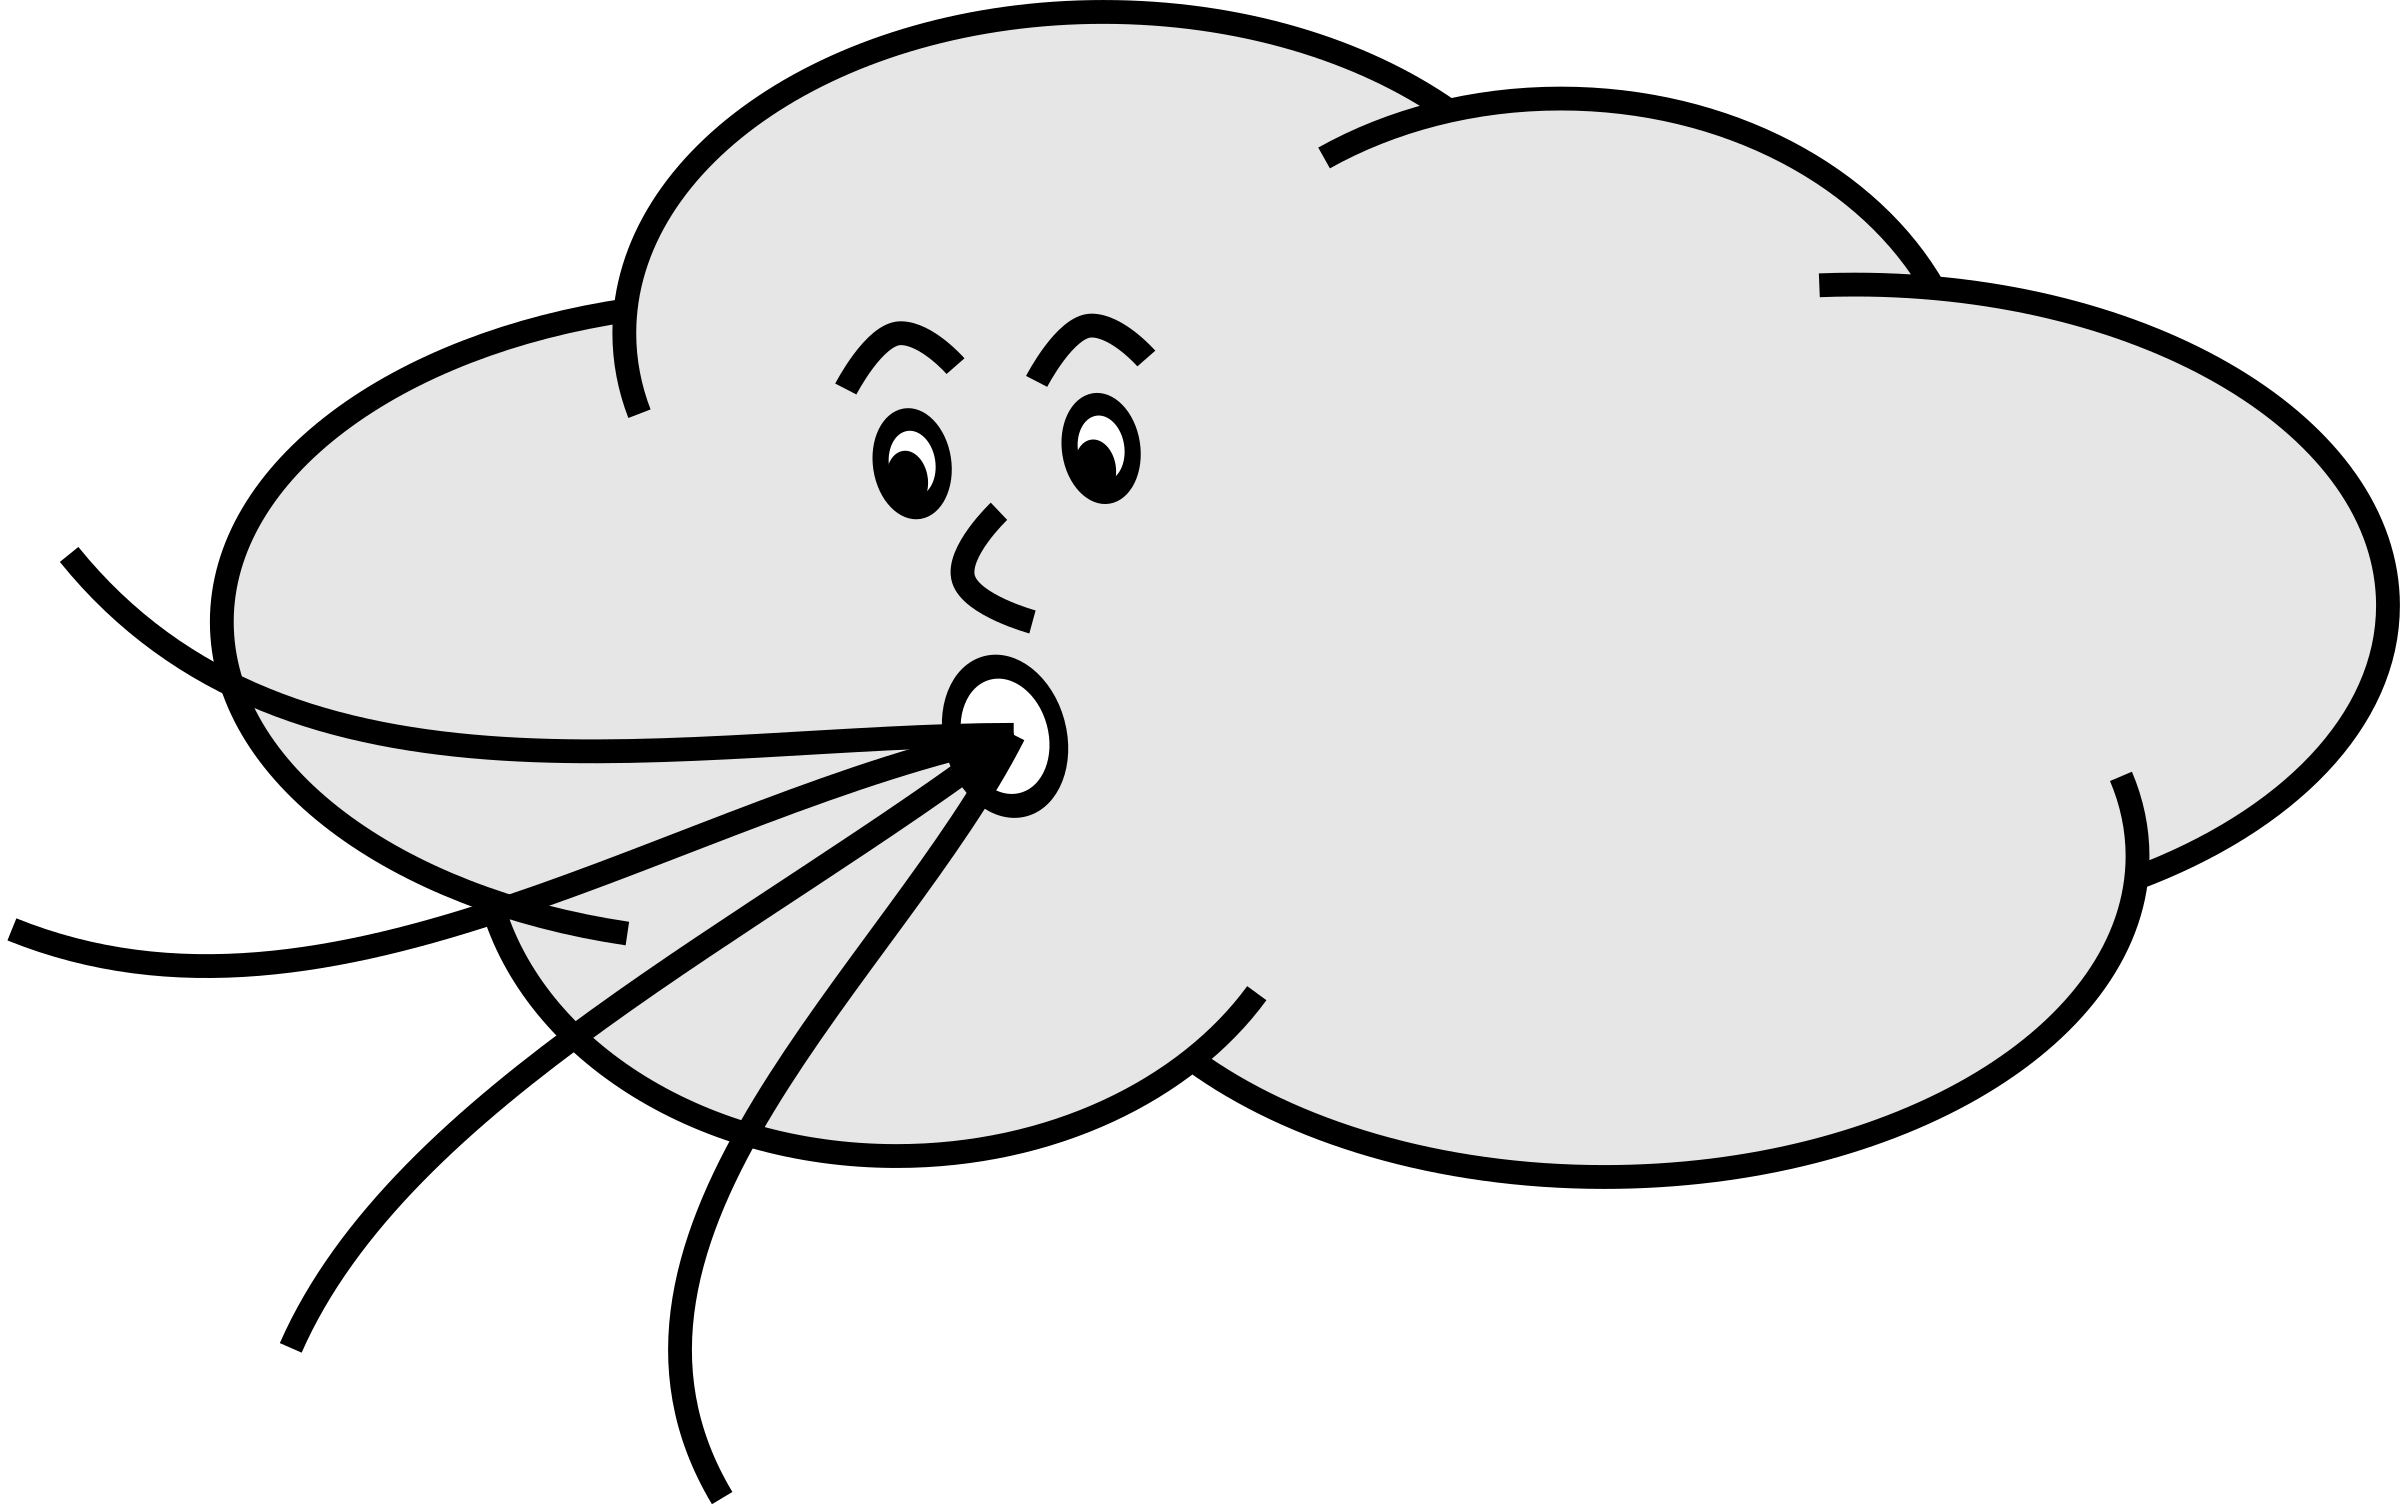 Sun and clouds clipart black and white jpg royalty free Free Cloud Clip Art Pictures - Clipartix jpg royalty free